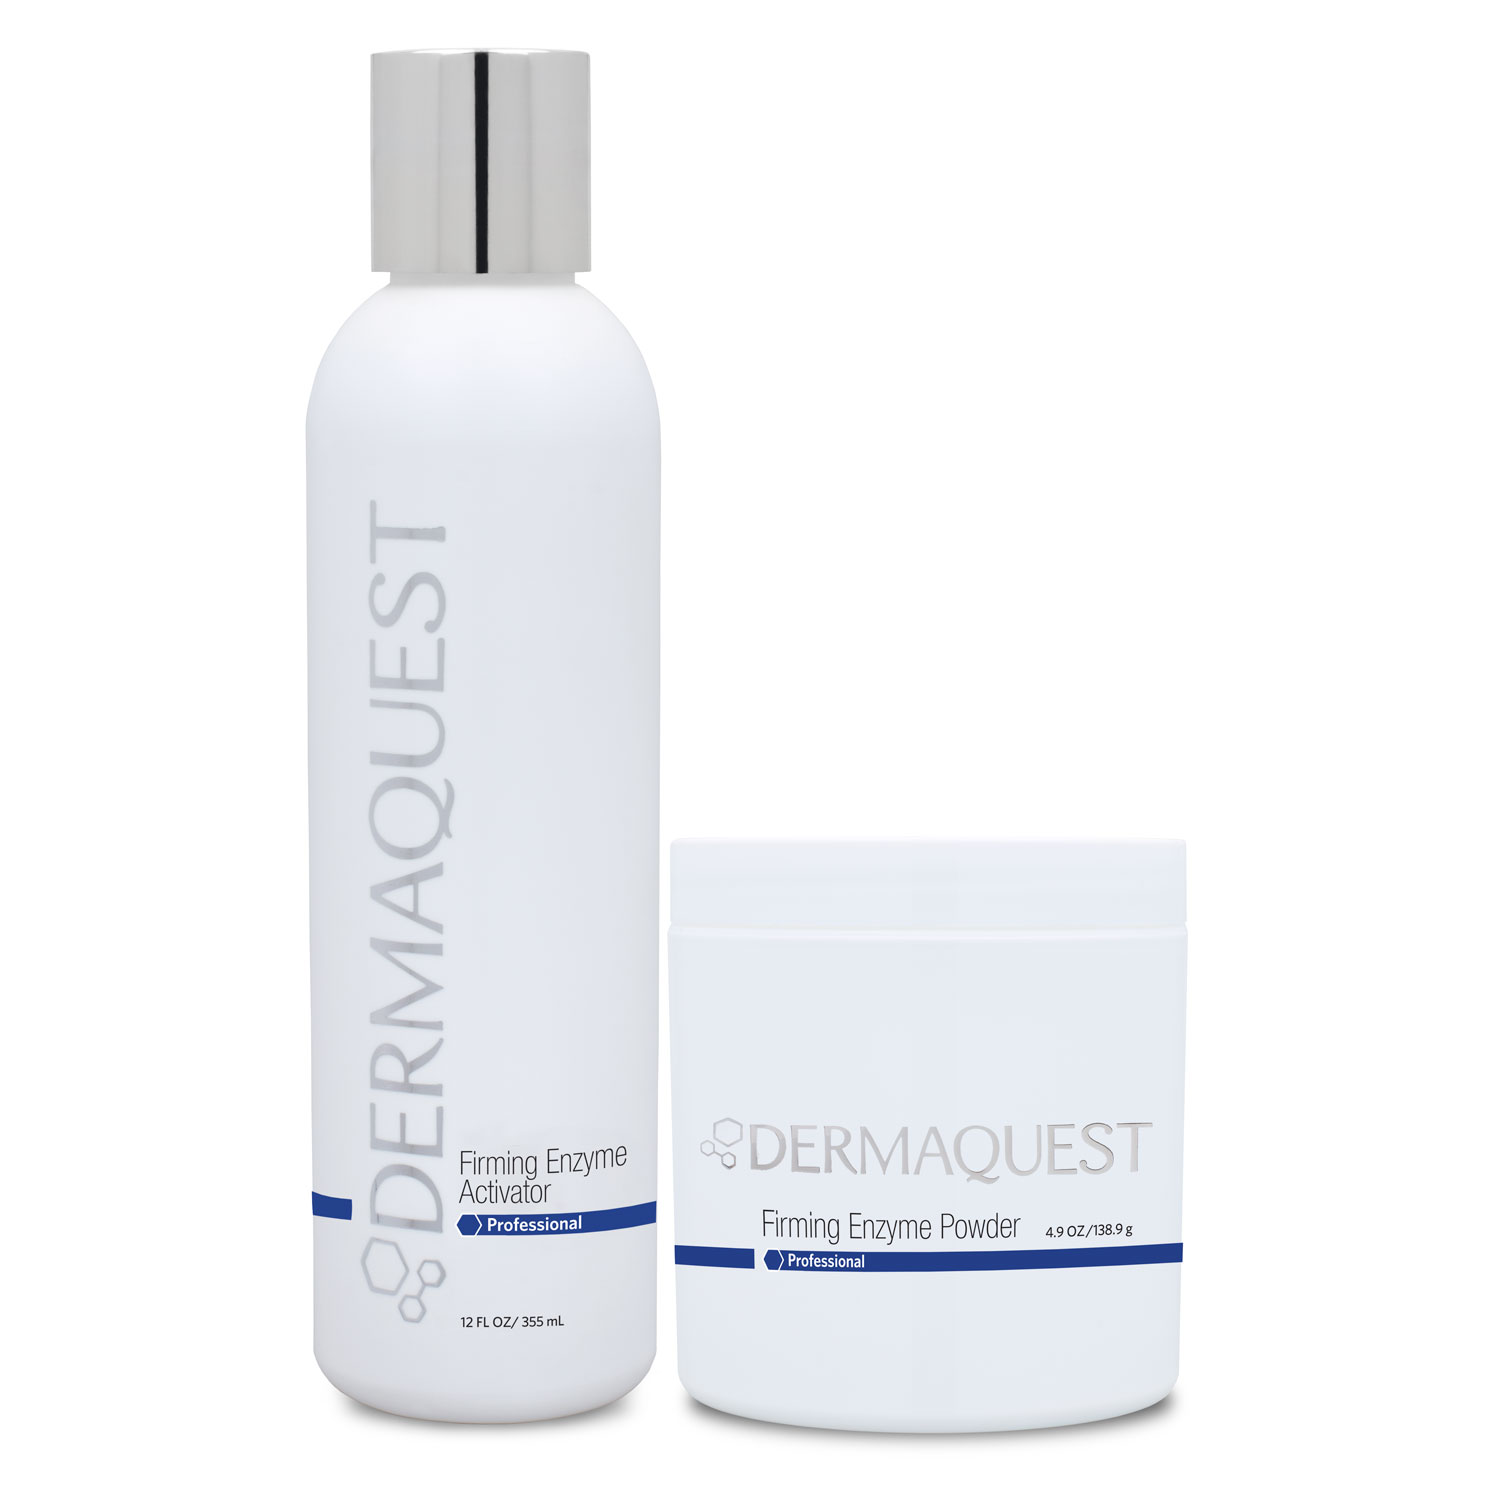 Firming Enzyme Treatment Dermaquest Professional Skin